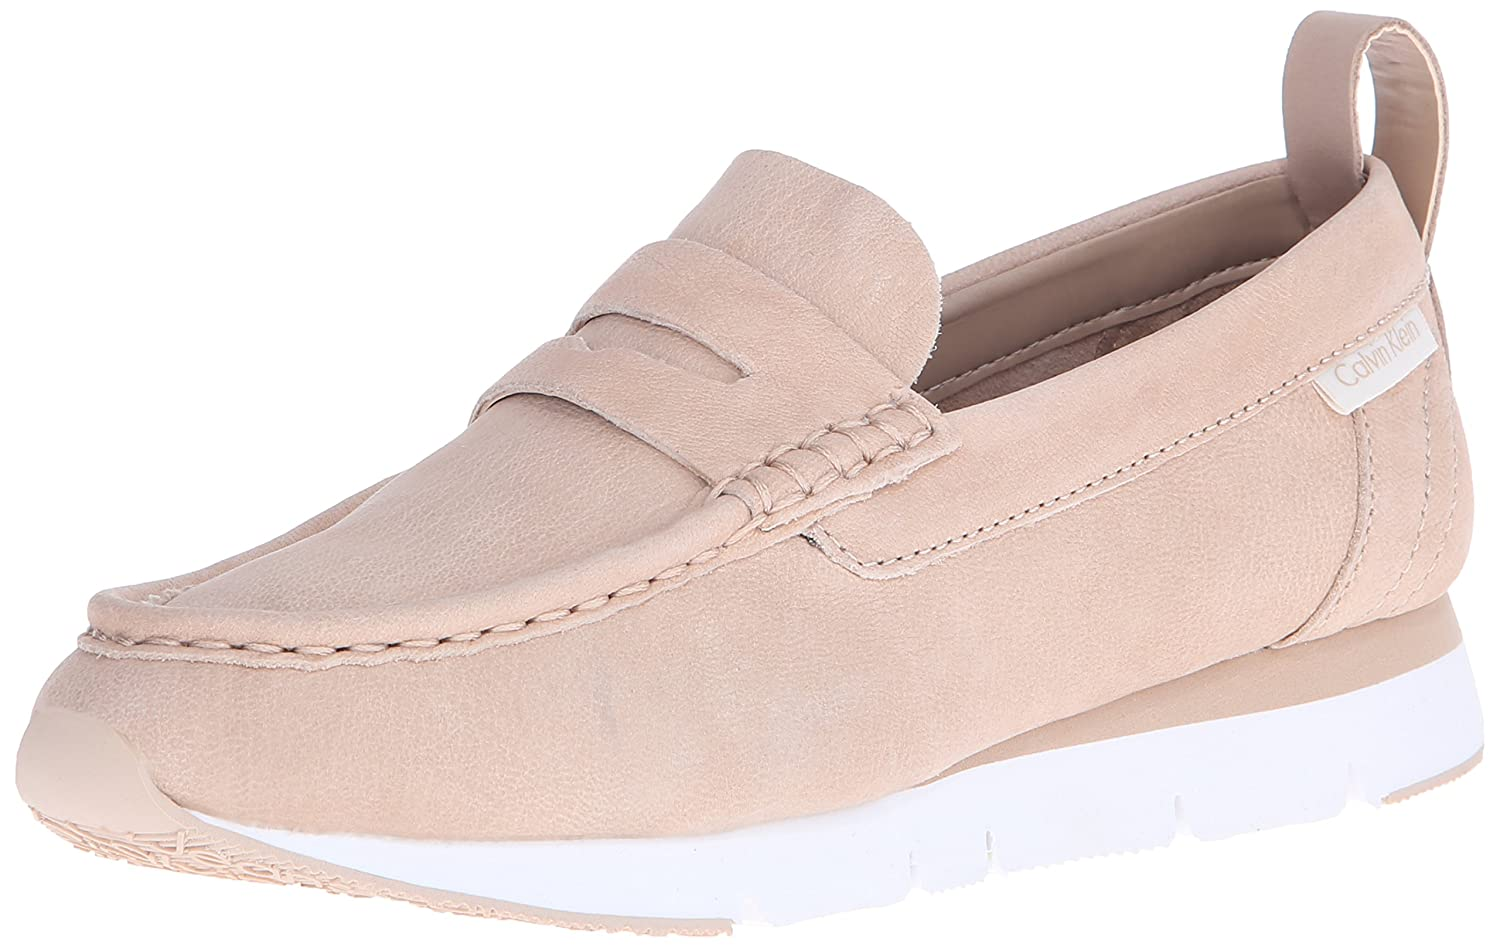 23af1e1a540 Calvin Klein Jeans Women s Sonora Penny Loafer  9Napu0909114  -  32.99